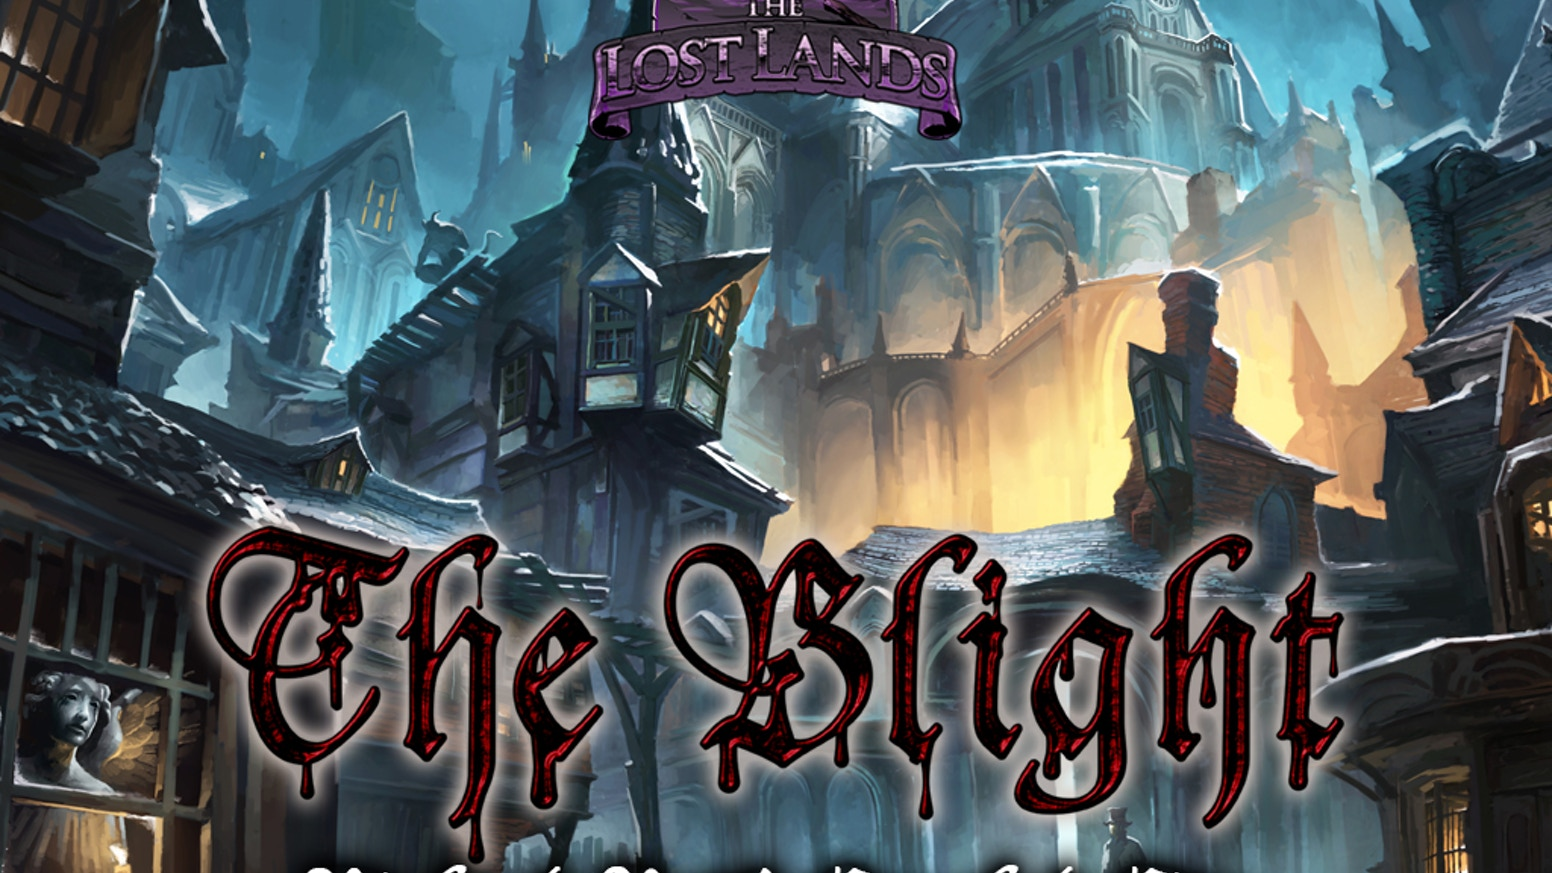 The Lost Lands: The Blight - Richard Pett's Crooked City by Frog God